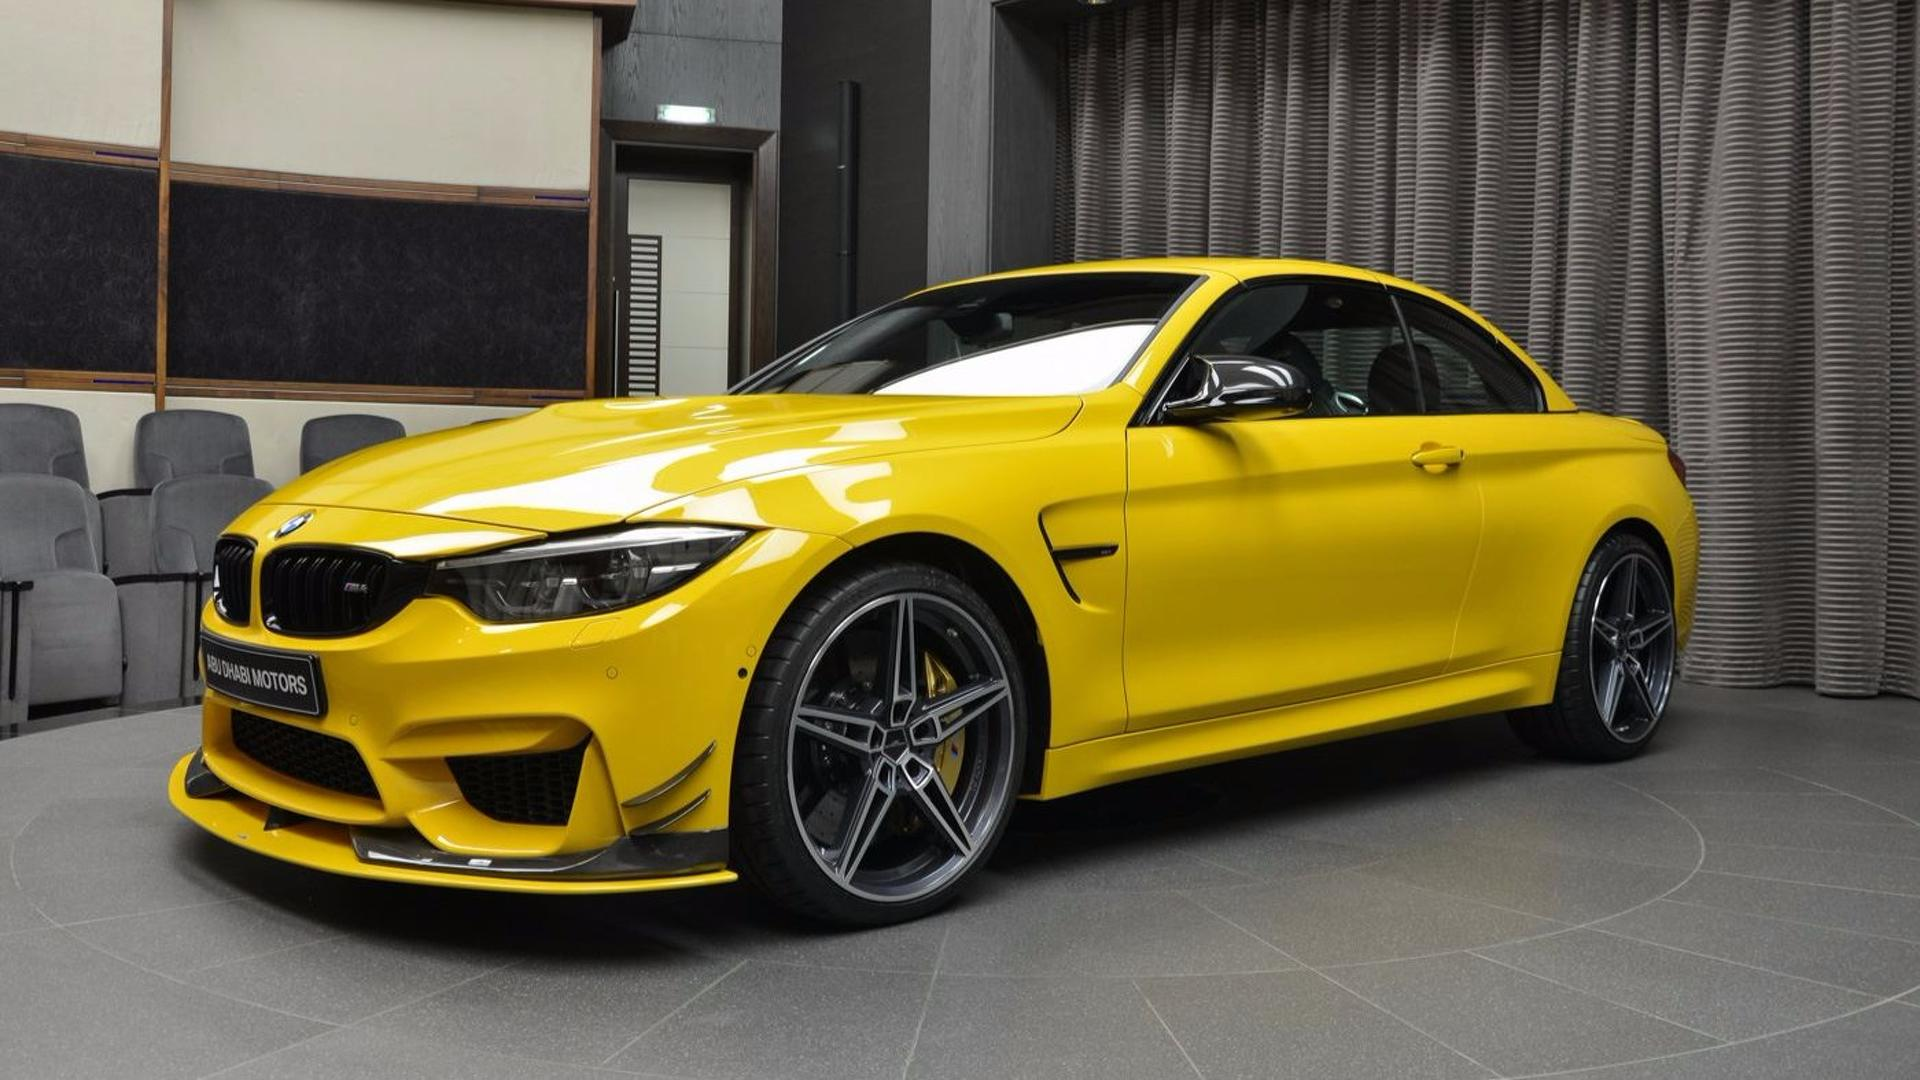 Bmw M4 Convertible With Ac Schnitzer Upgrades Is The Top Banana